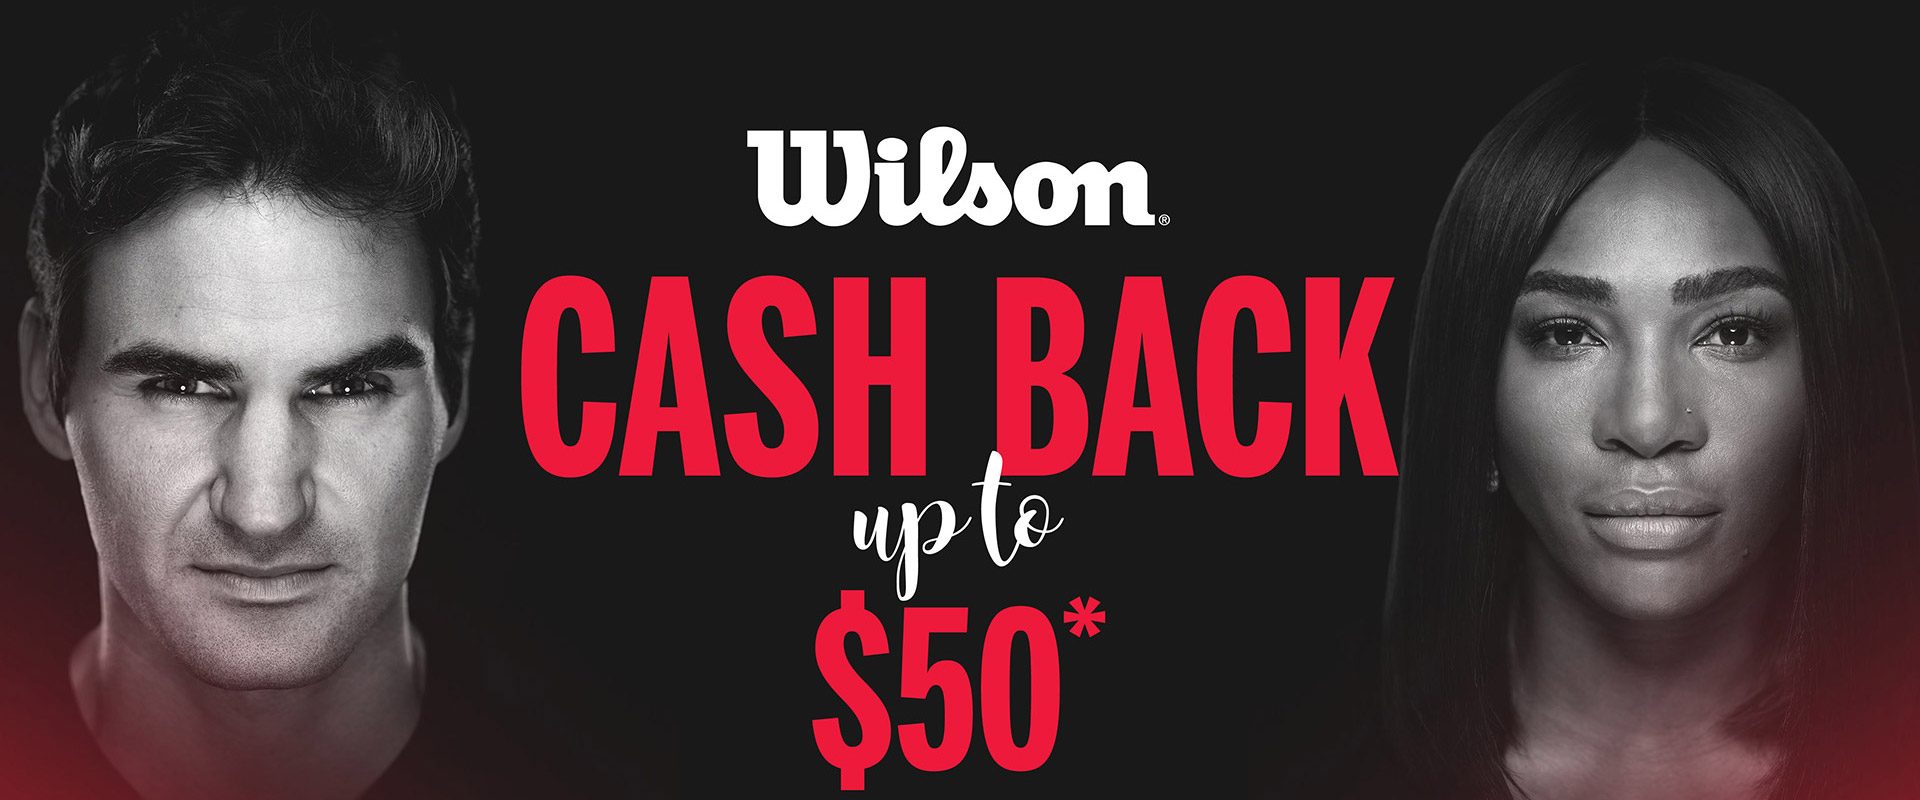 Wilson cash back up to $50